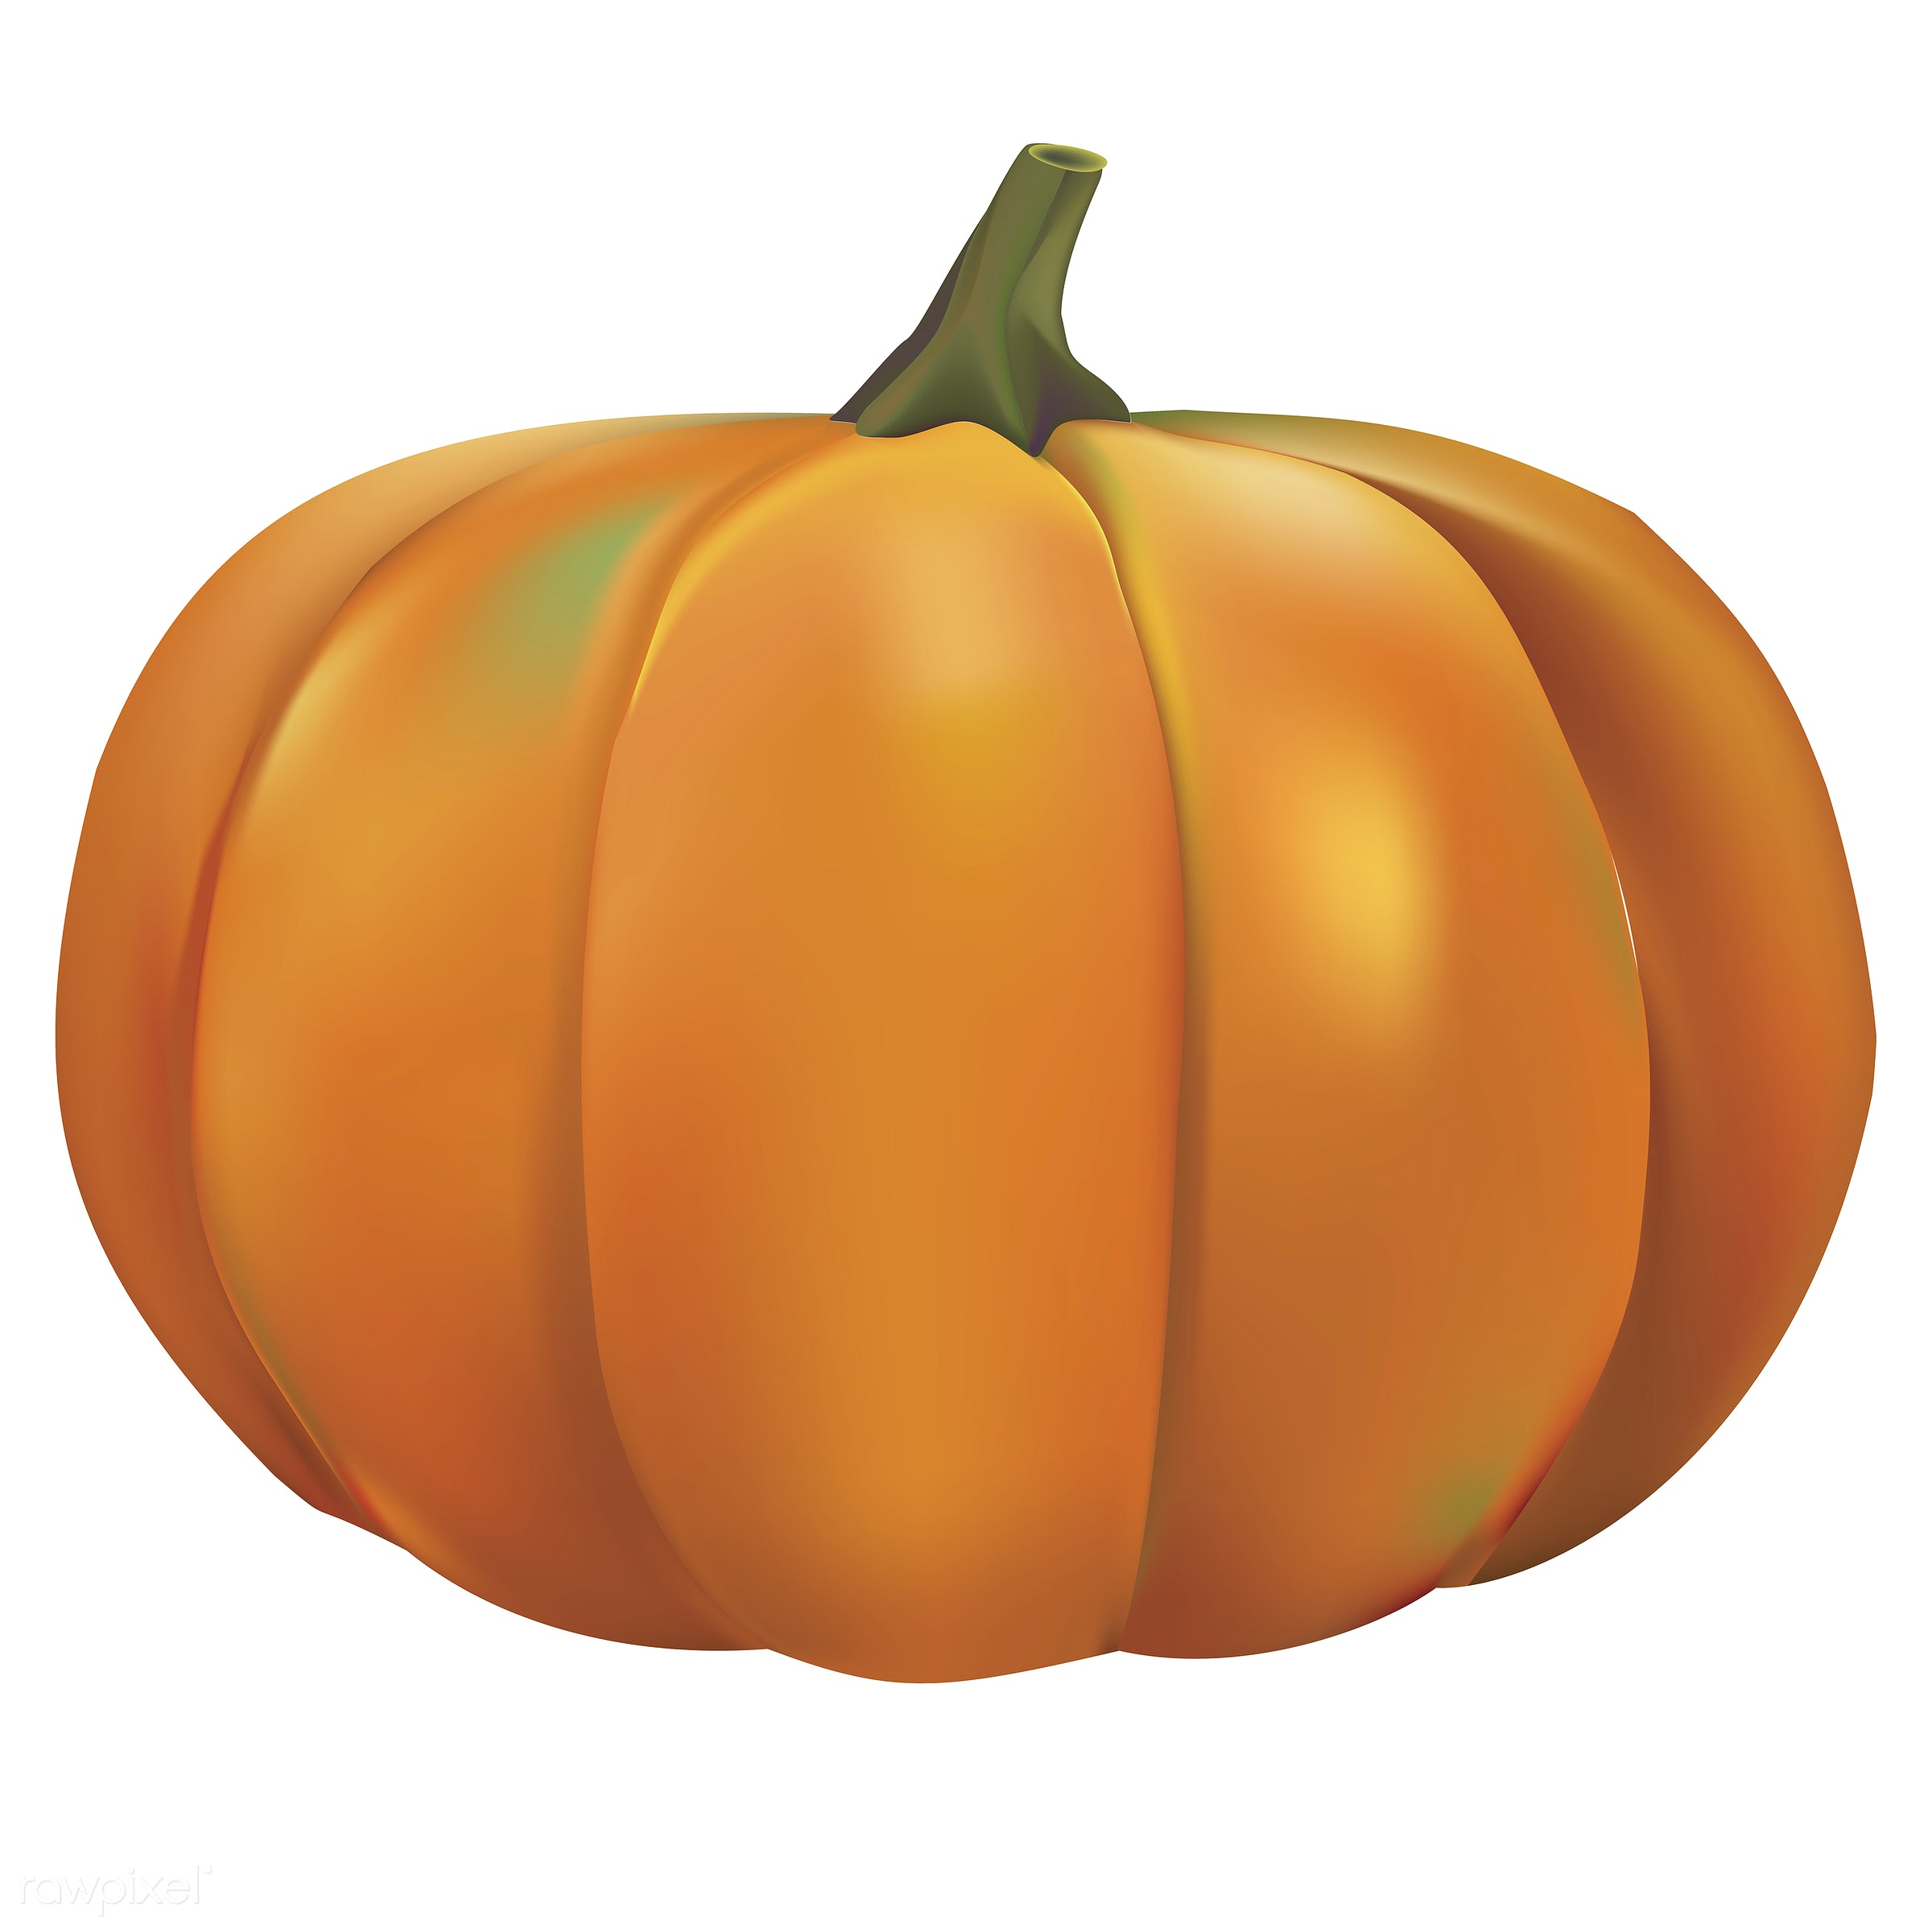 Illustration of pumpkin isolated on white background - autumn, celebration, crops, elements, fall, festival, graphic,...